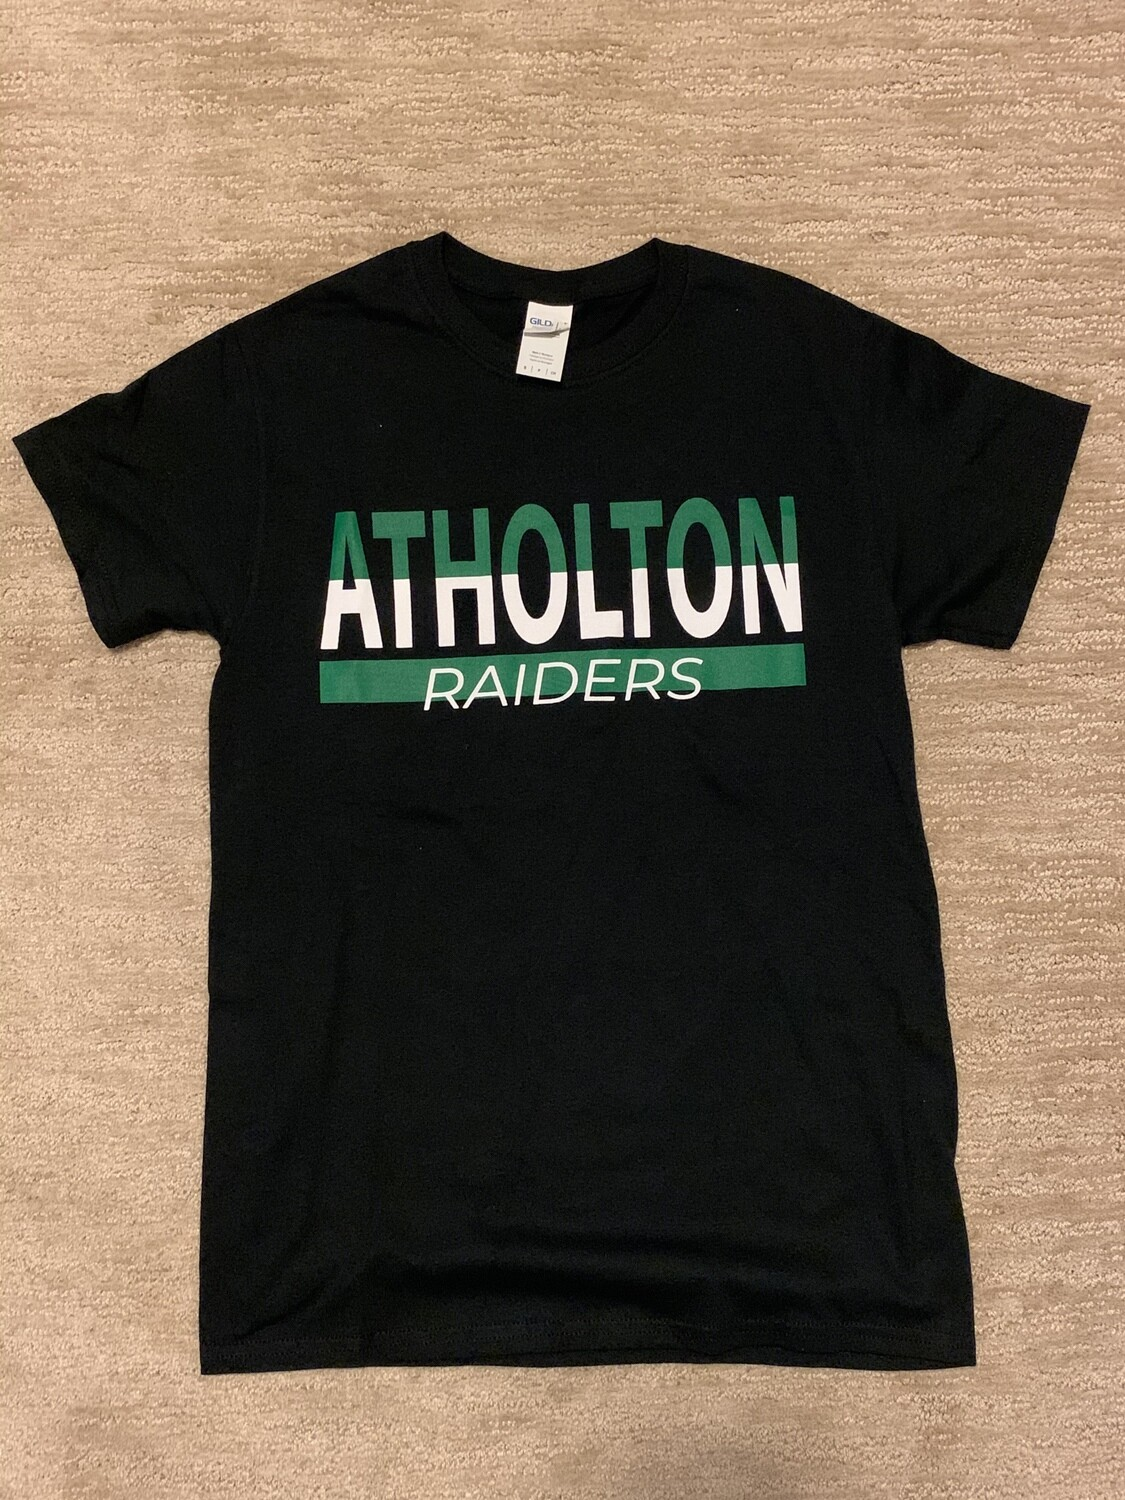 Atholton Raiders T shirt- large, black